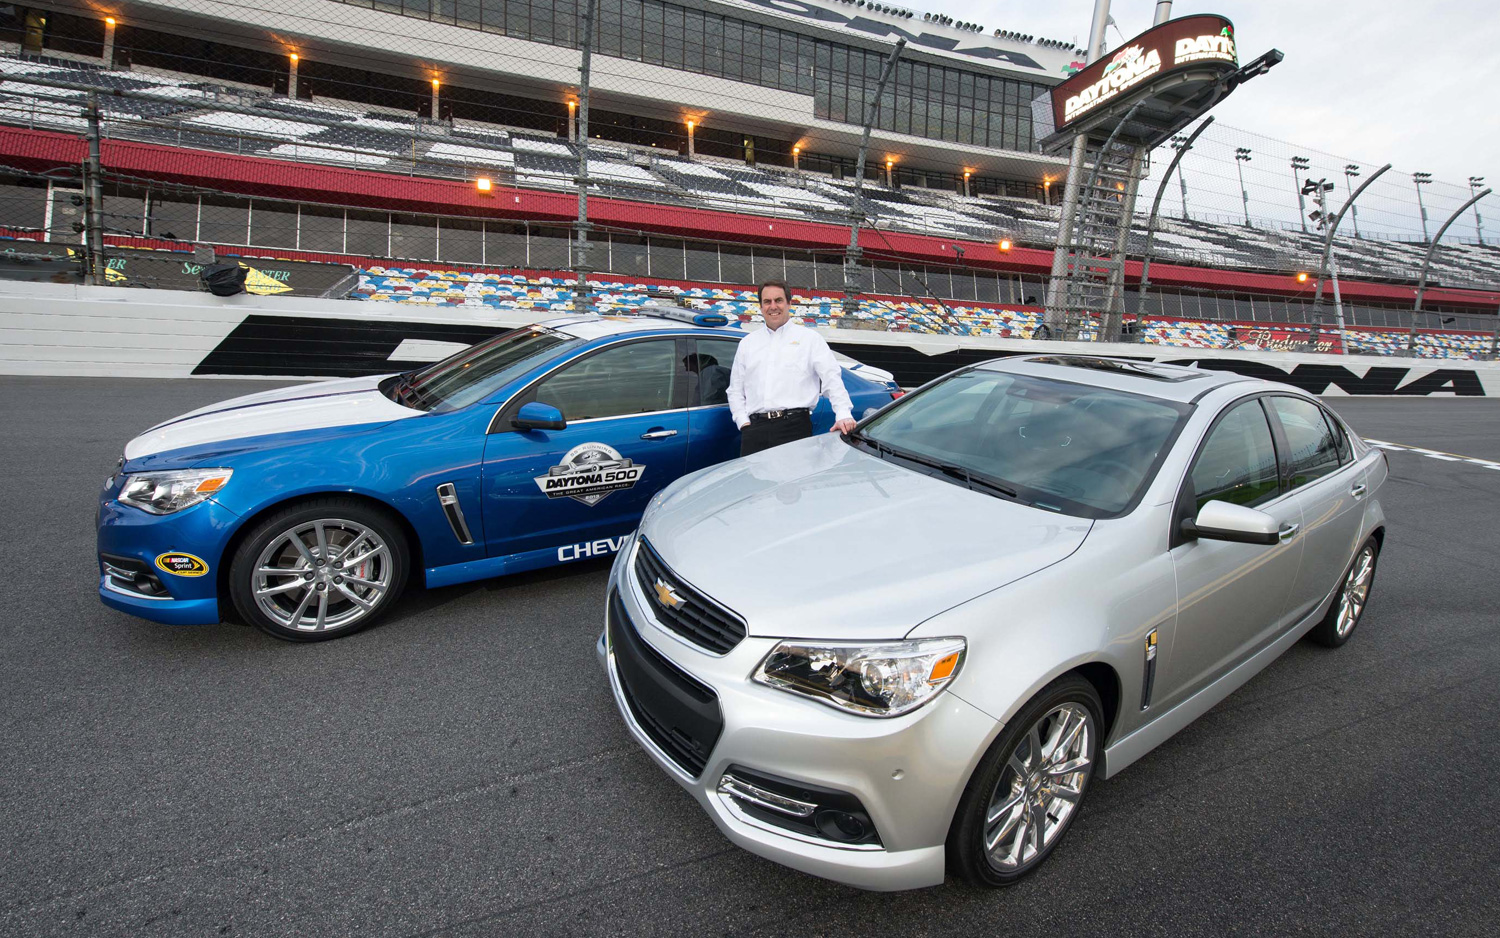 Video Find: 2014 Chevrolet SS Race, Road Cars Featured in Daytona ...